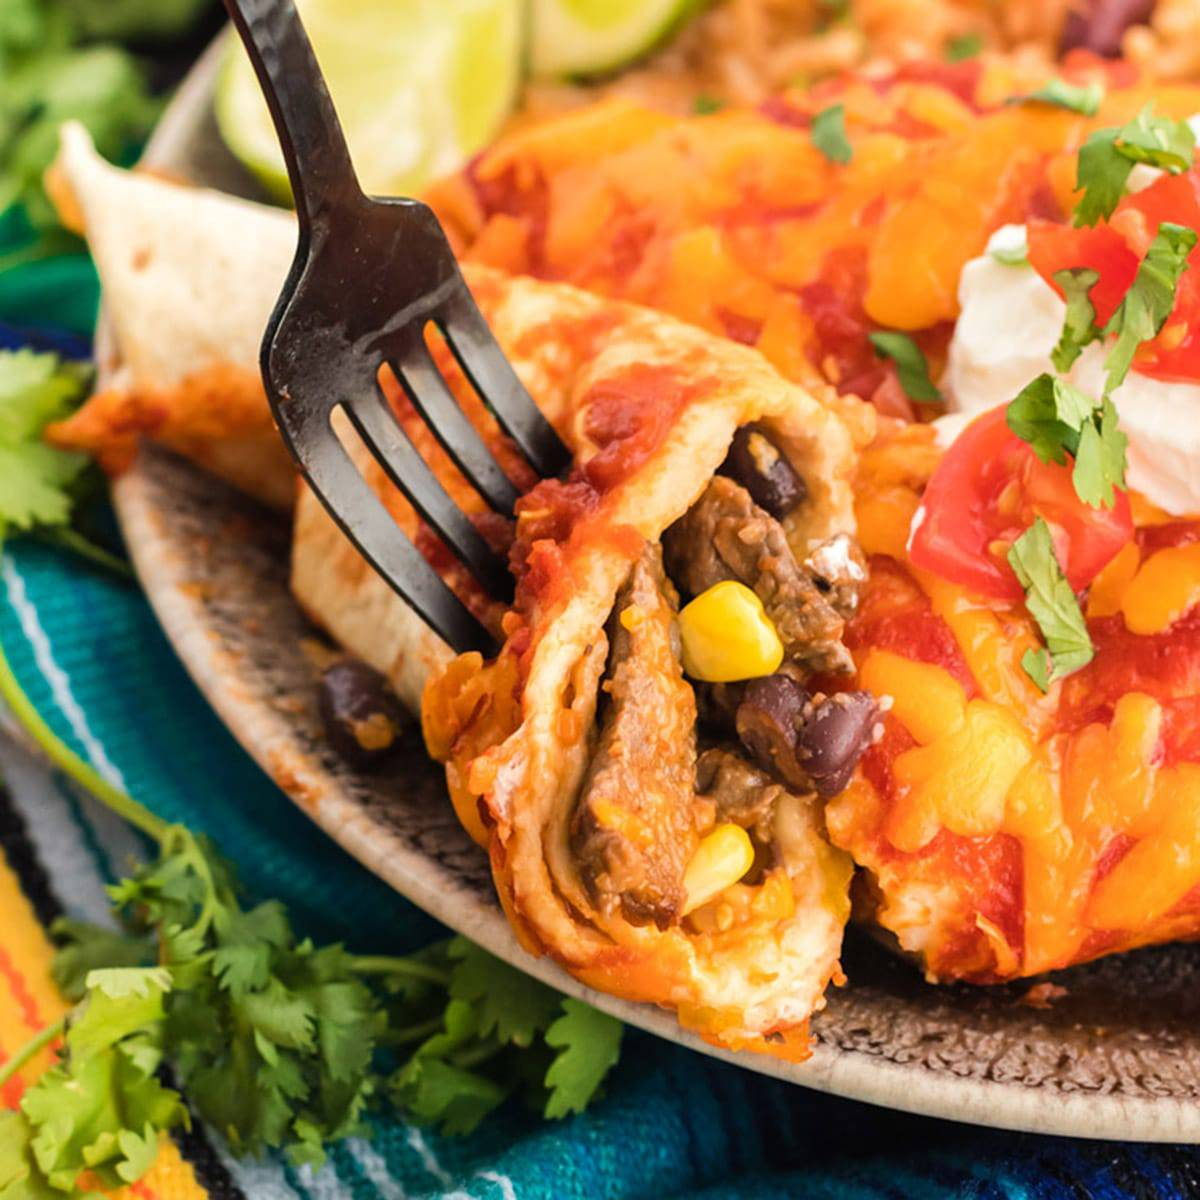 Using a fork to eat an enchilada made with leftover steak.